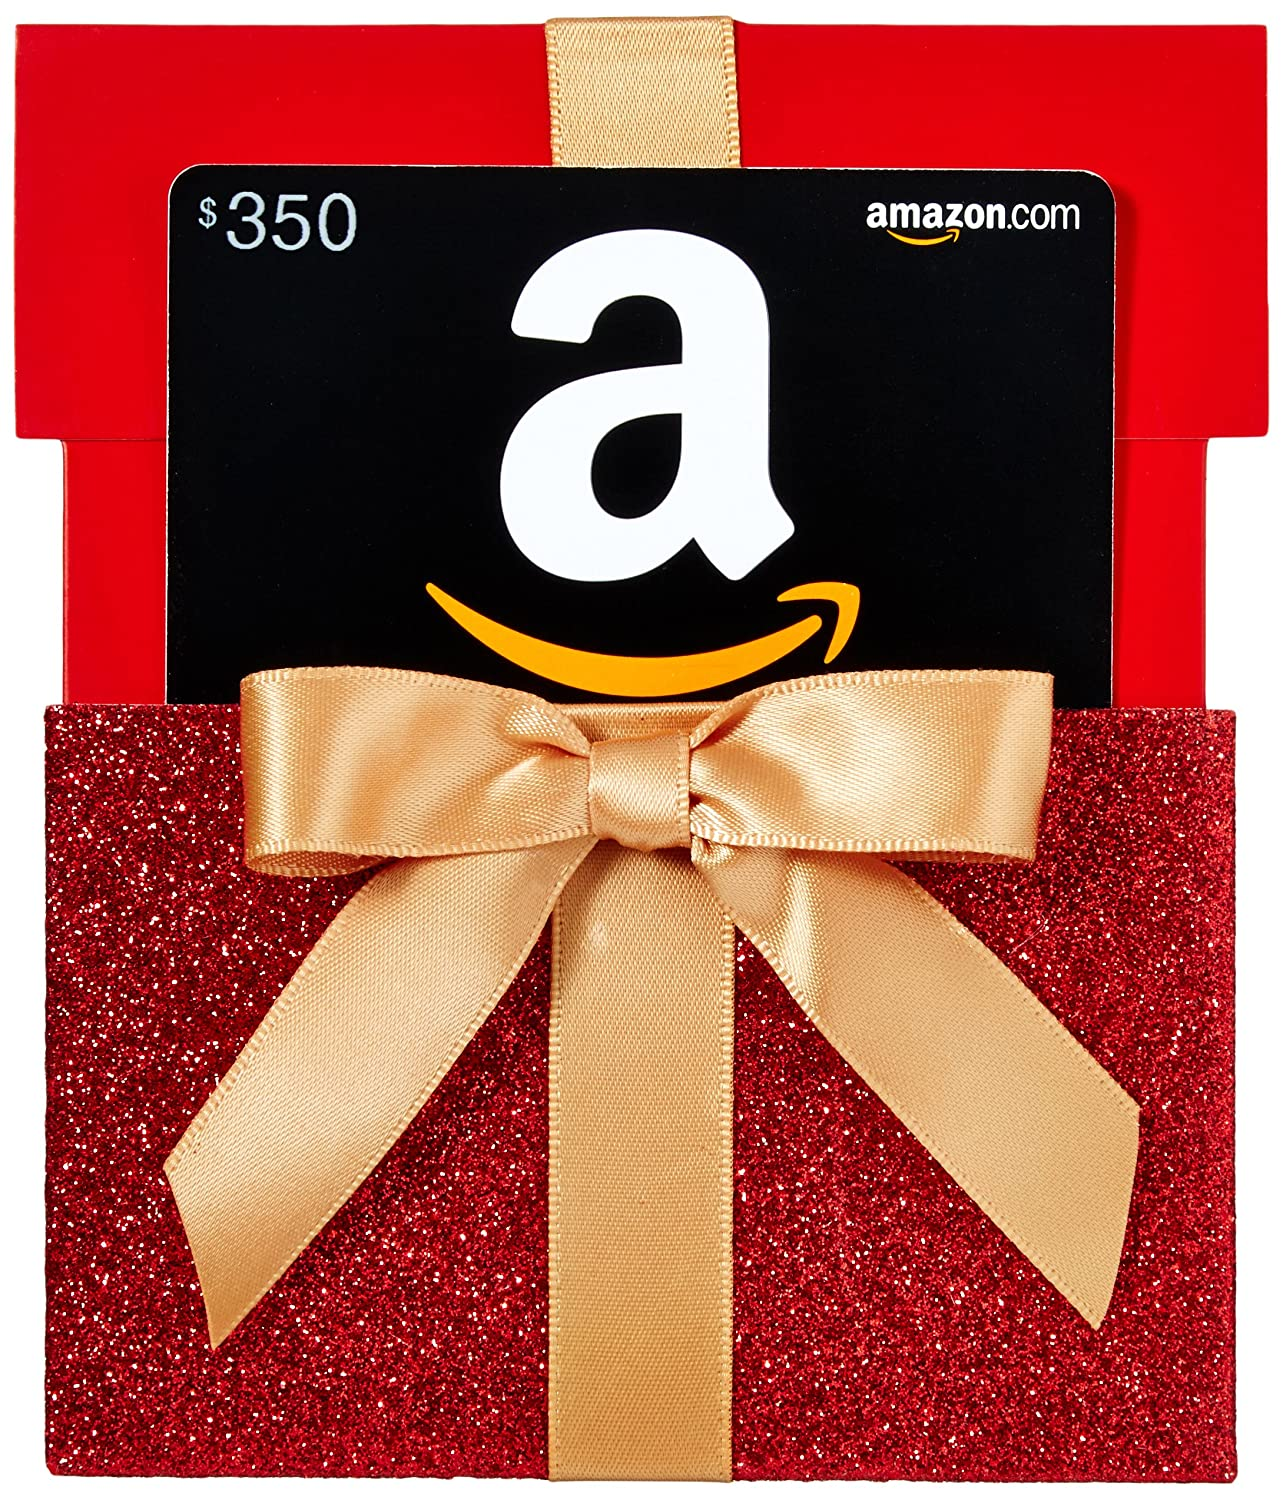 Amazon.com Gift Card in a Red Gift Box Reveal VariableDenomination